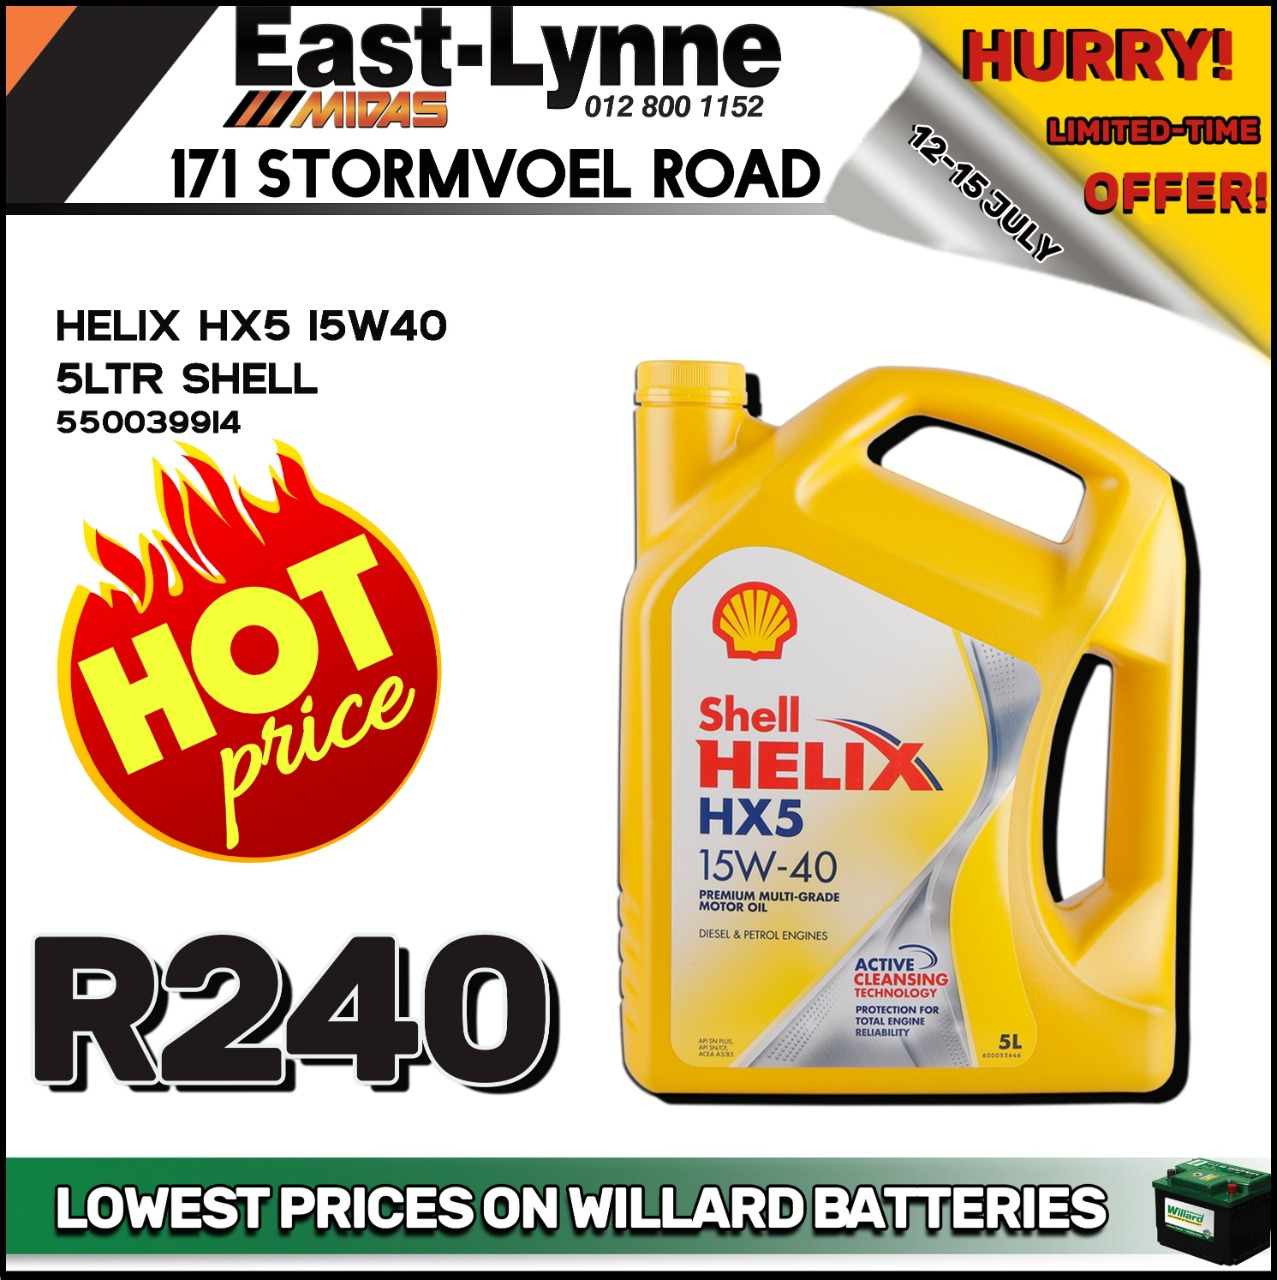 Shell Helix HX5 15W40 5L ONLY at East-Lynne MIDAS!